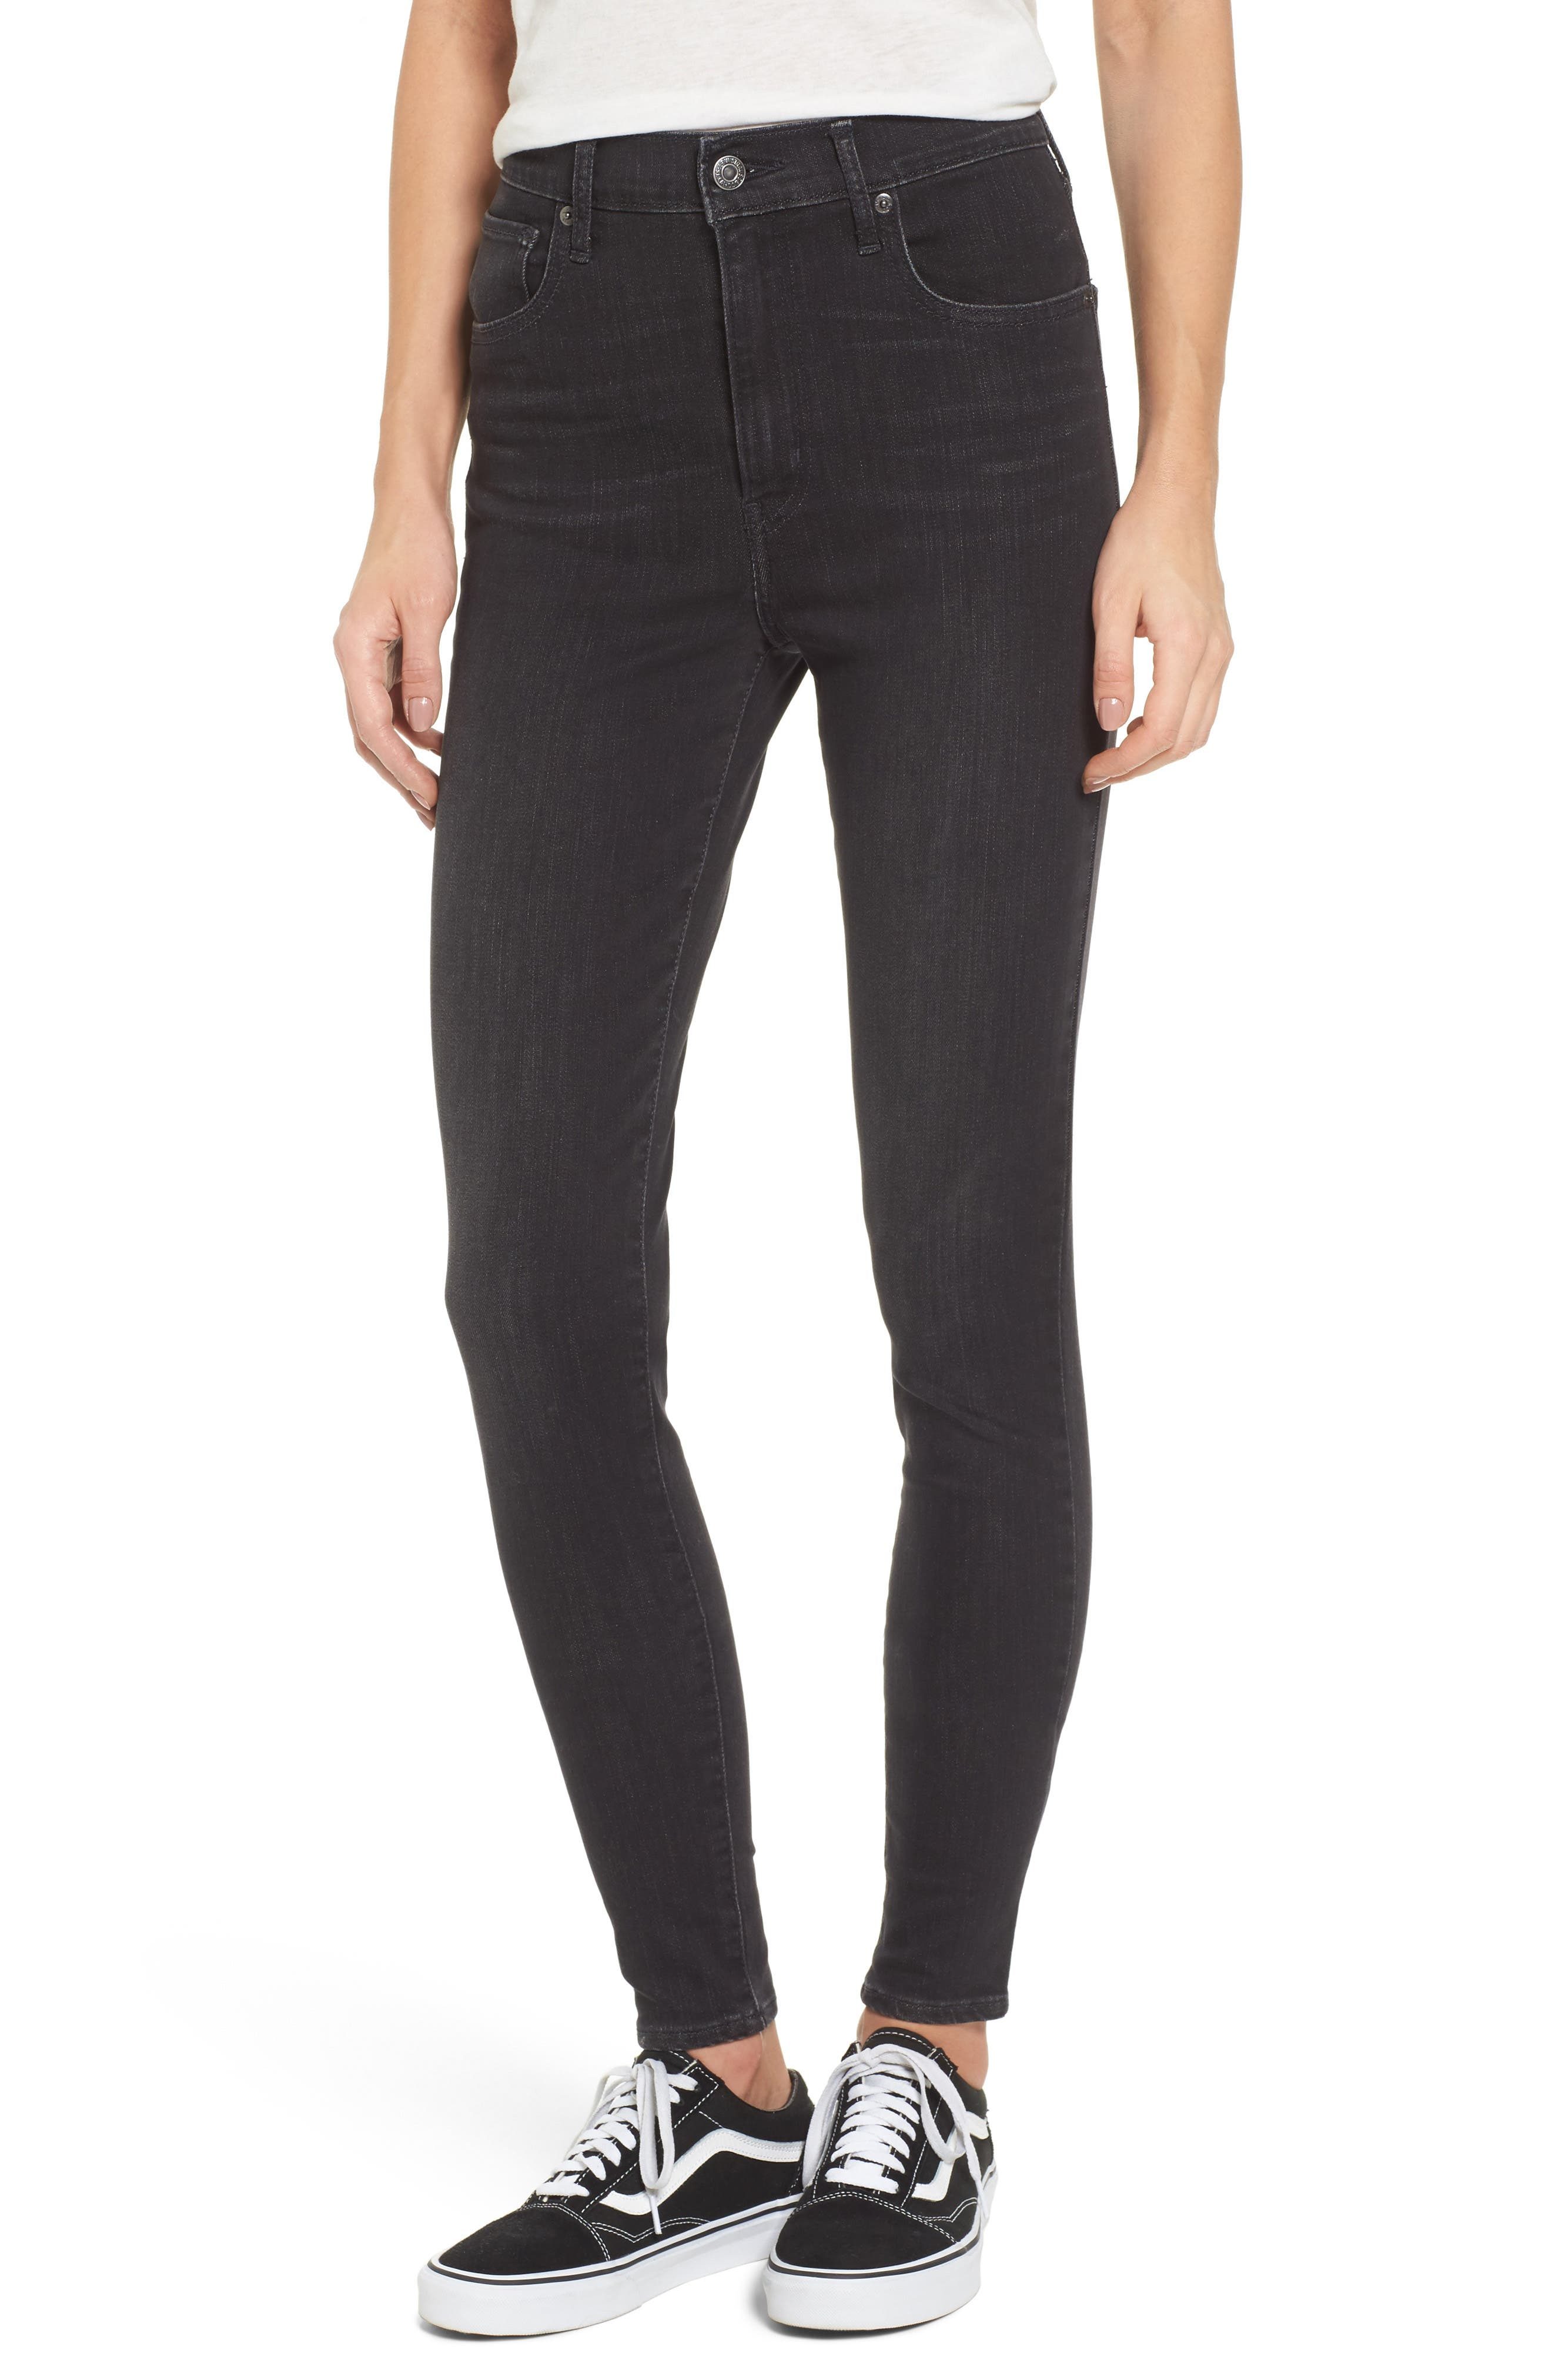 Mile High High Rise Skinny Jeans,                             Main thumbnail 1, color,                             001